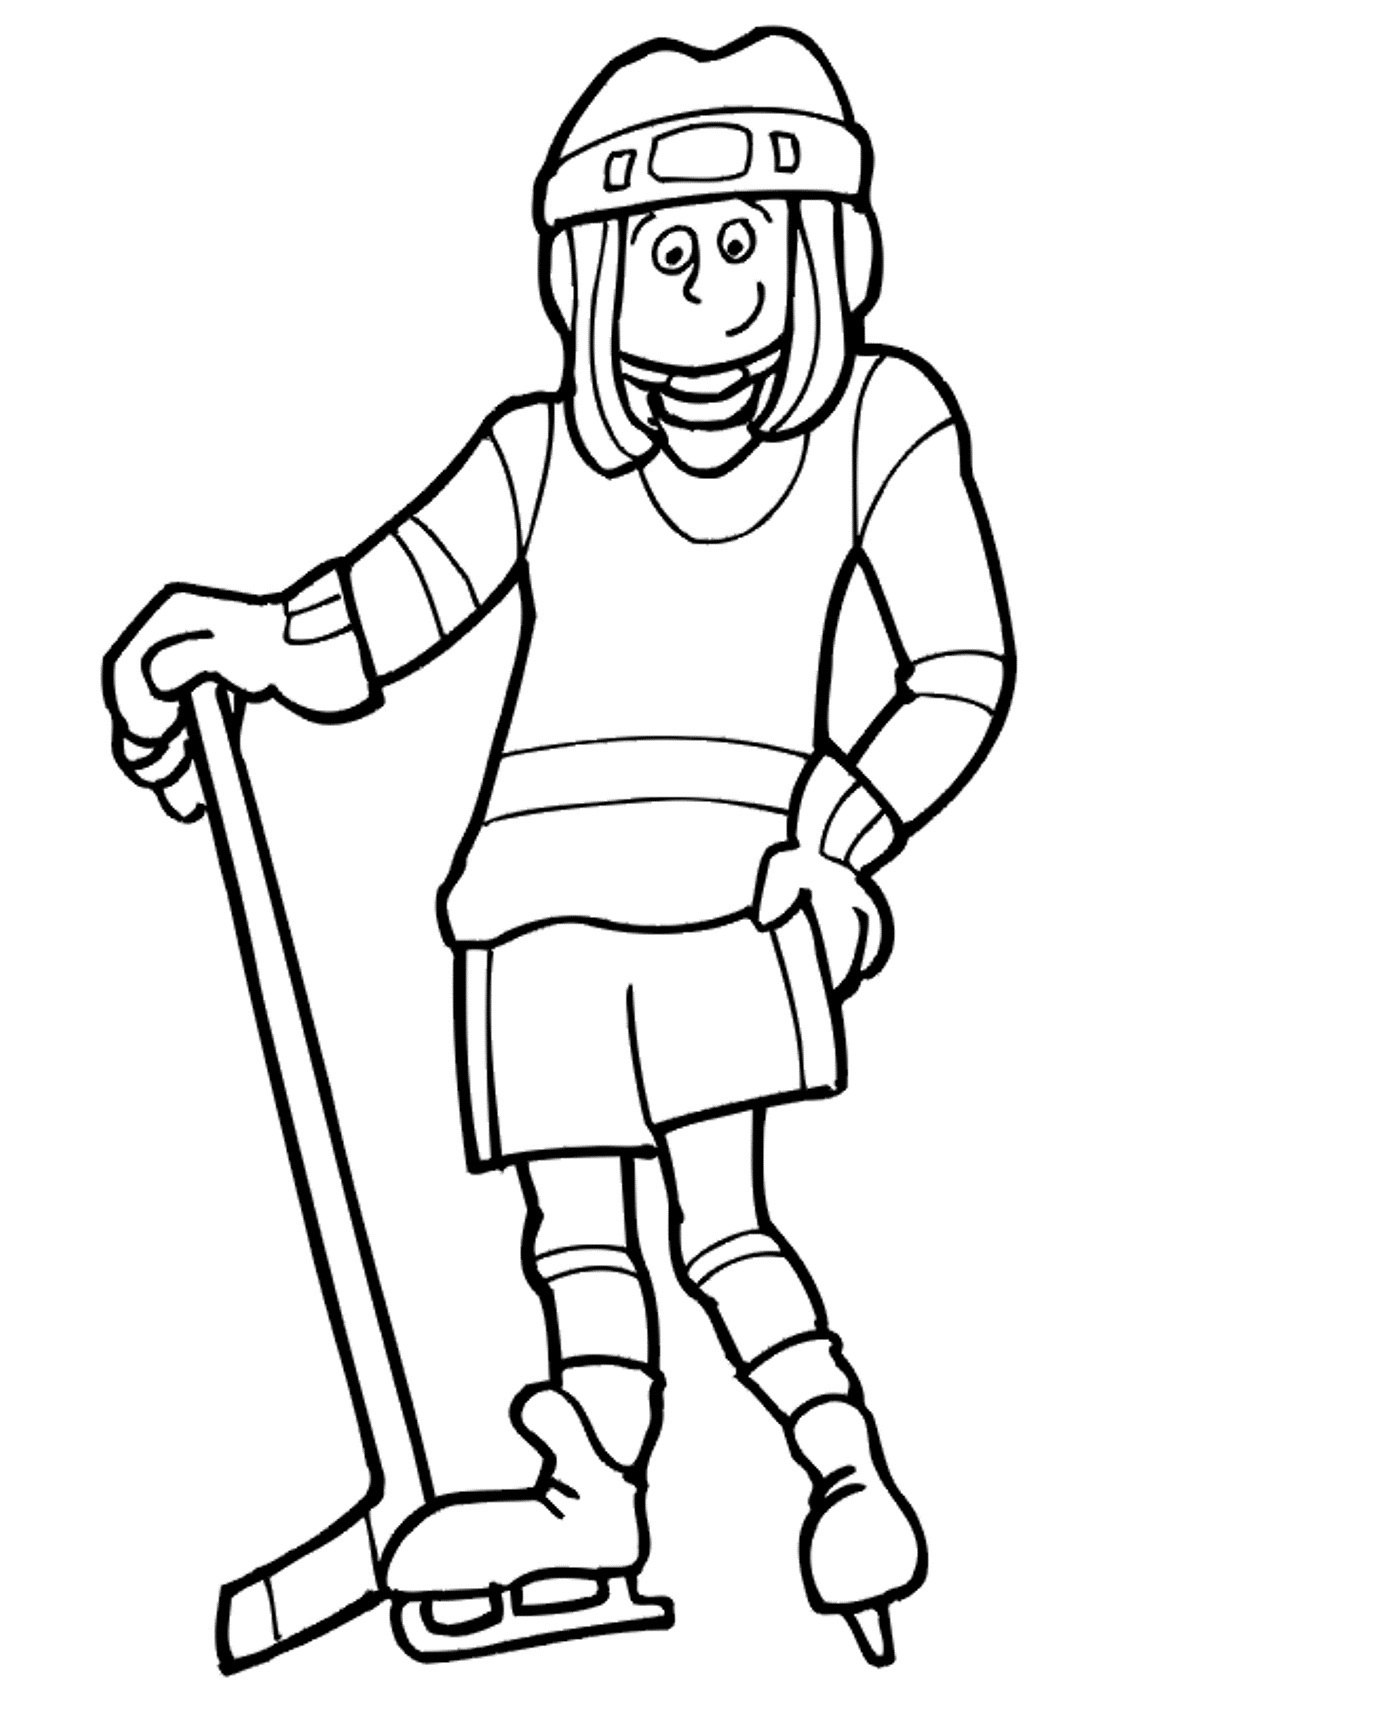 Pin free coloring hockey on pinterest for Hockey coloring pages printable